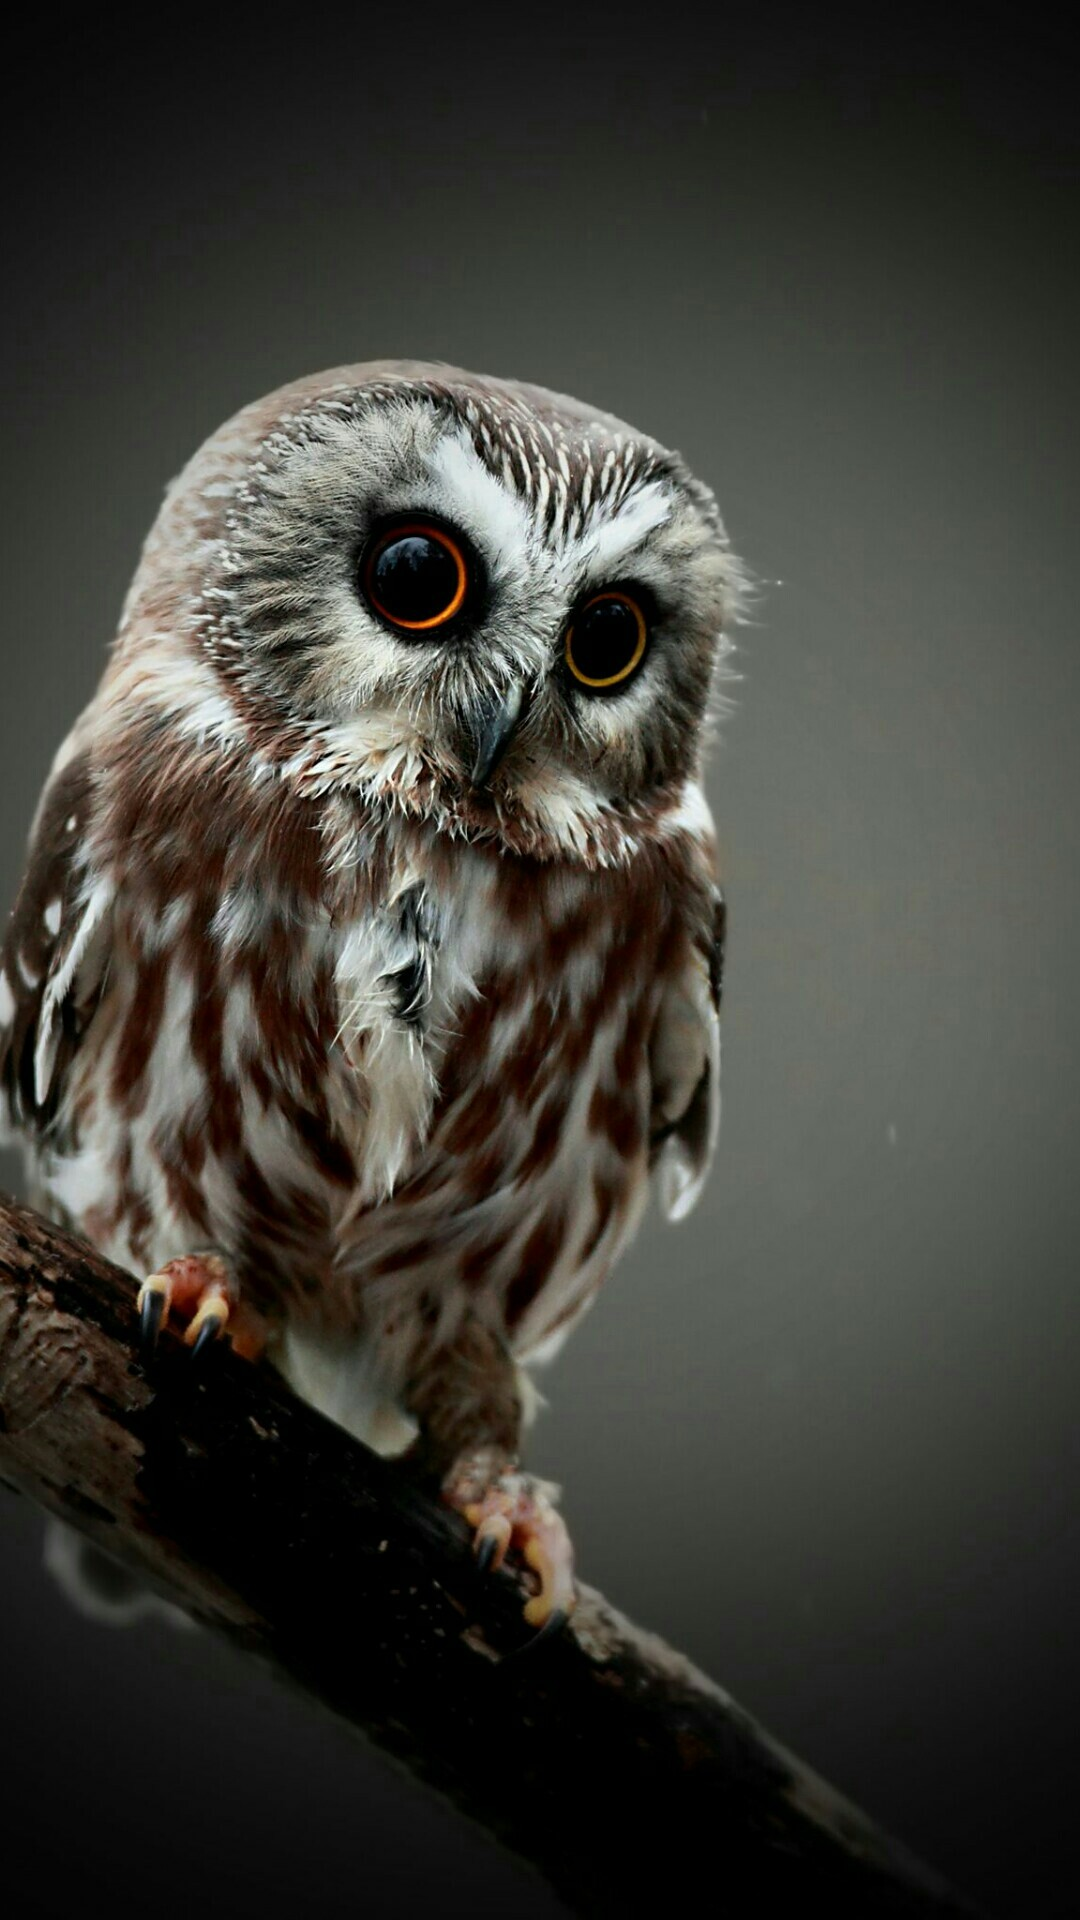 Cute Owl Wallpaper 66 images